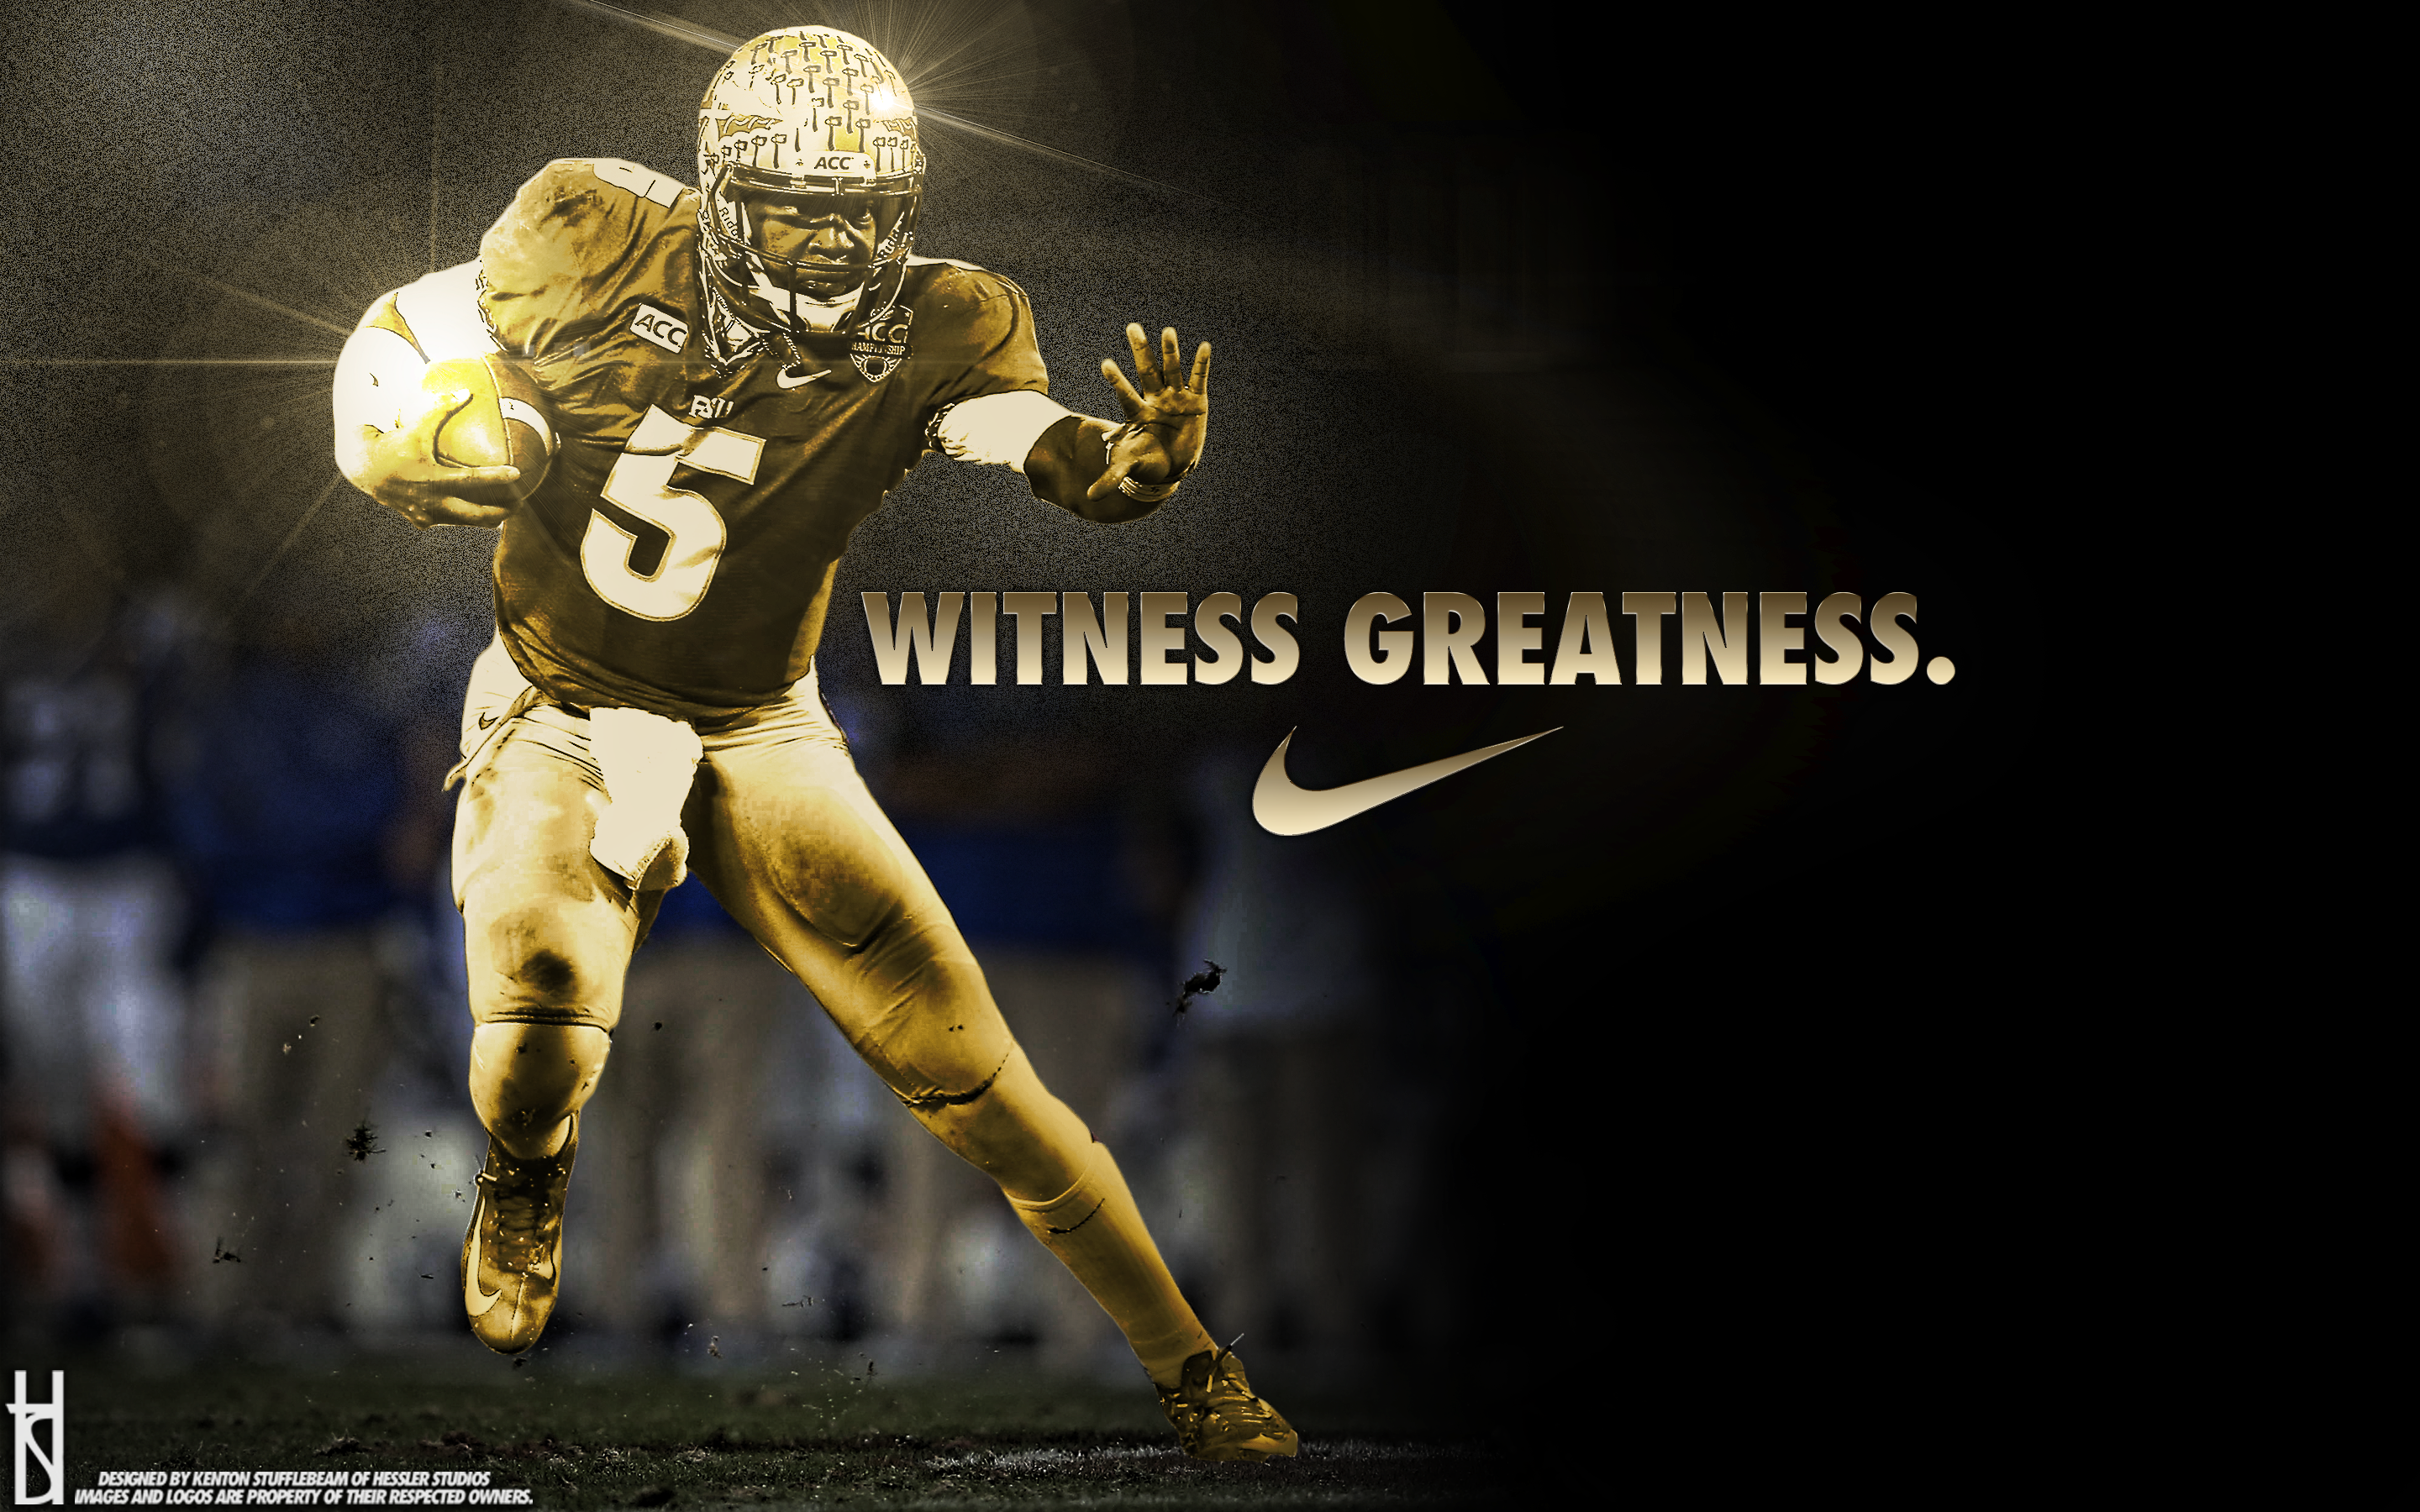 Lebron James We Are All Witnesses Poster Witness greatness   jameis 2880x1800